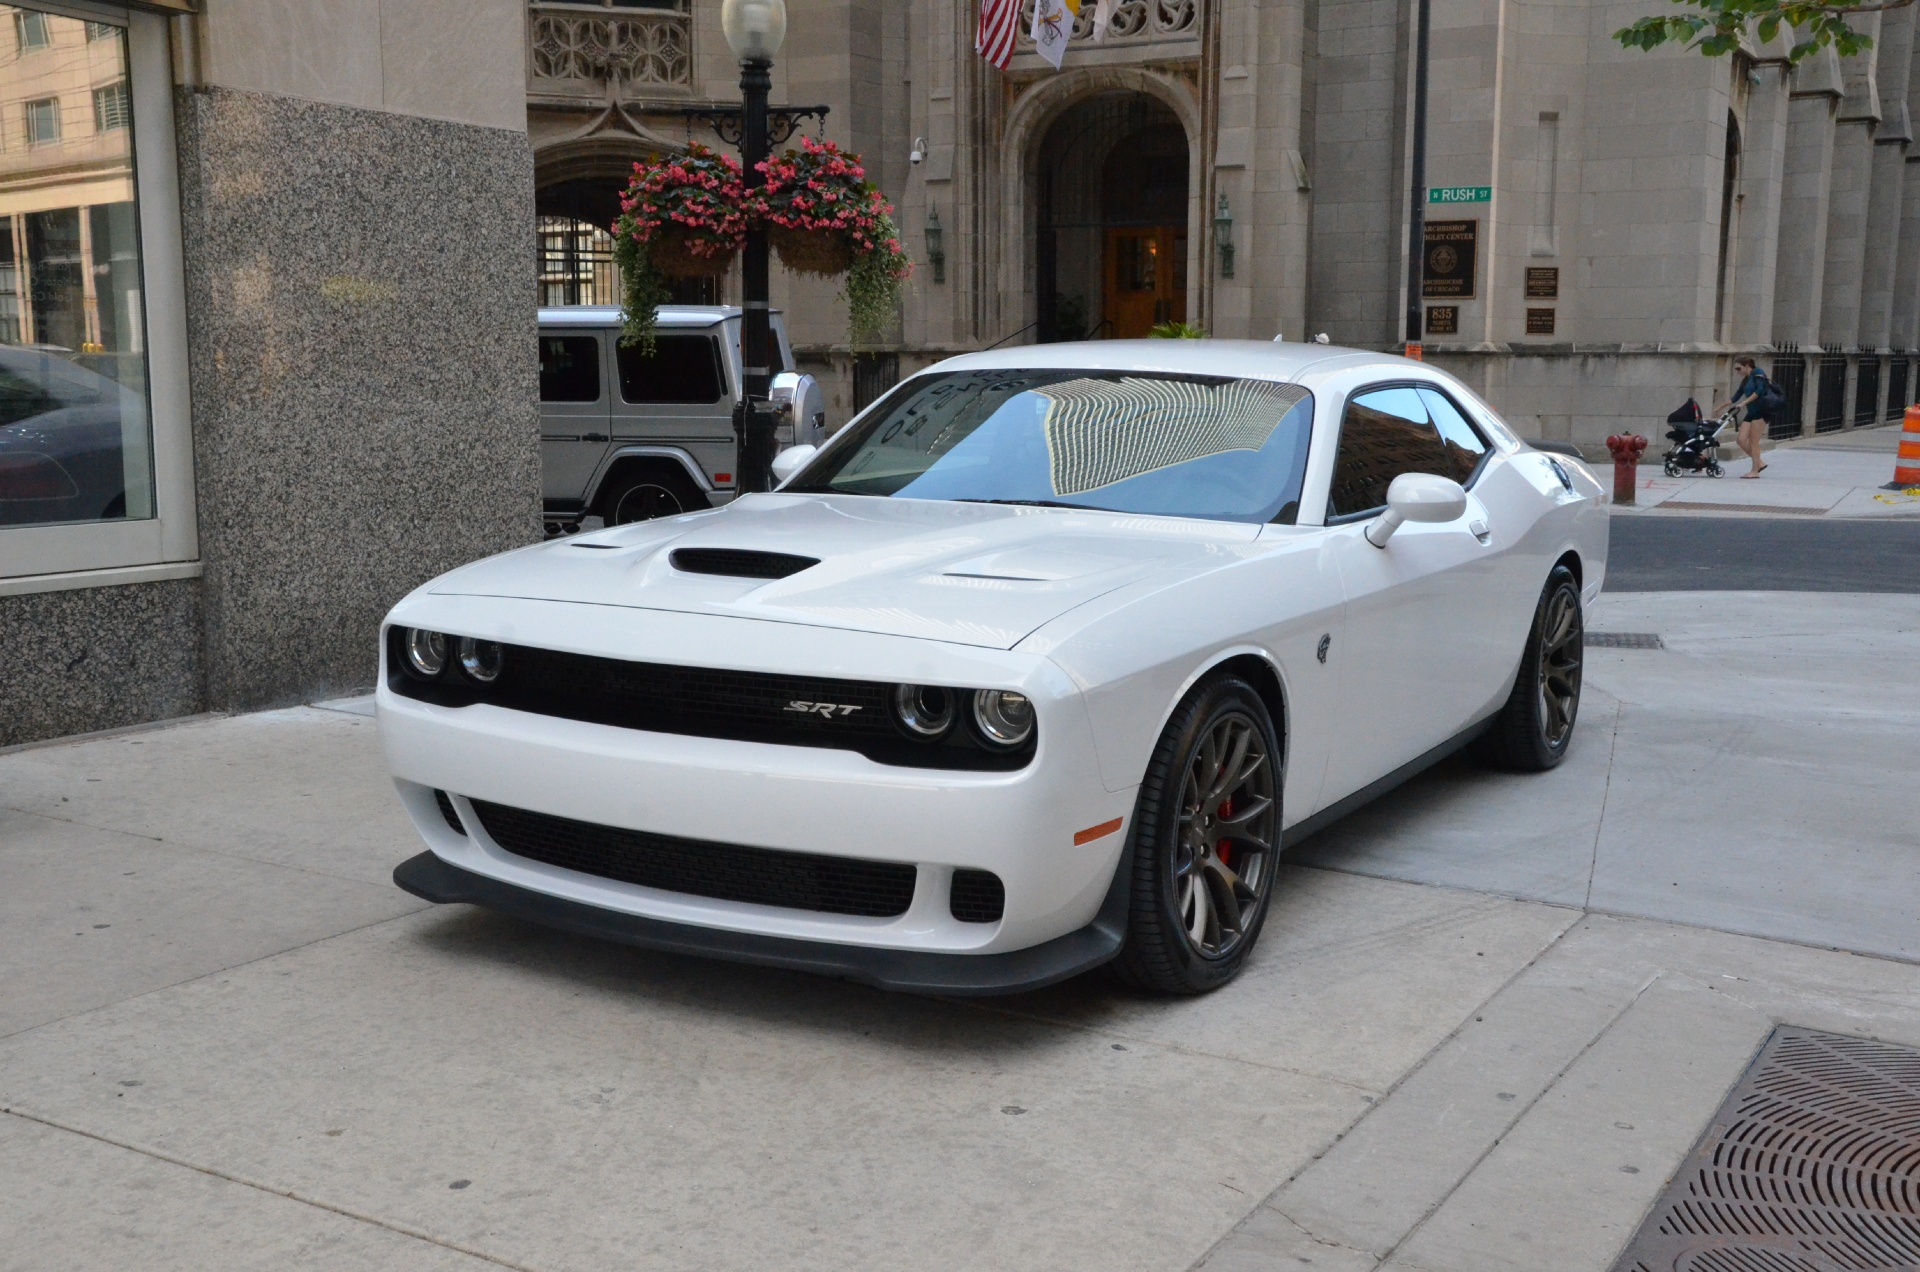 2015 dodge challenger srt hellcat stock gc1430b for sale near chicago il il dodge dealer. Black Bedroom Furniture Sets. Home Design Ideas